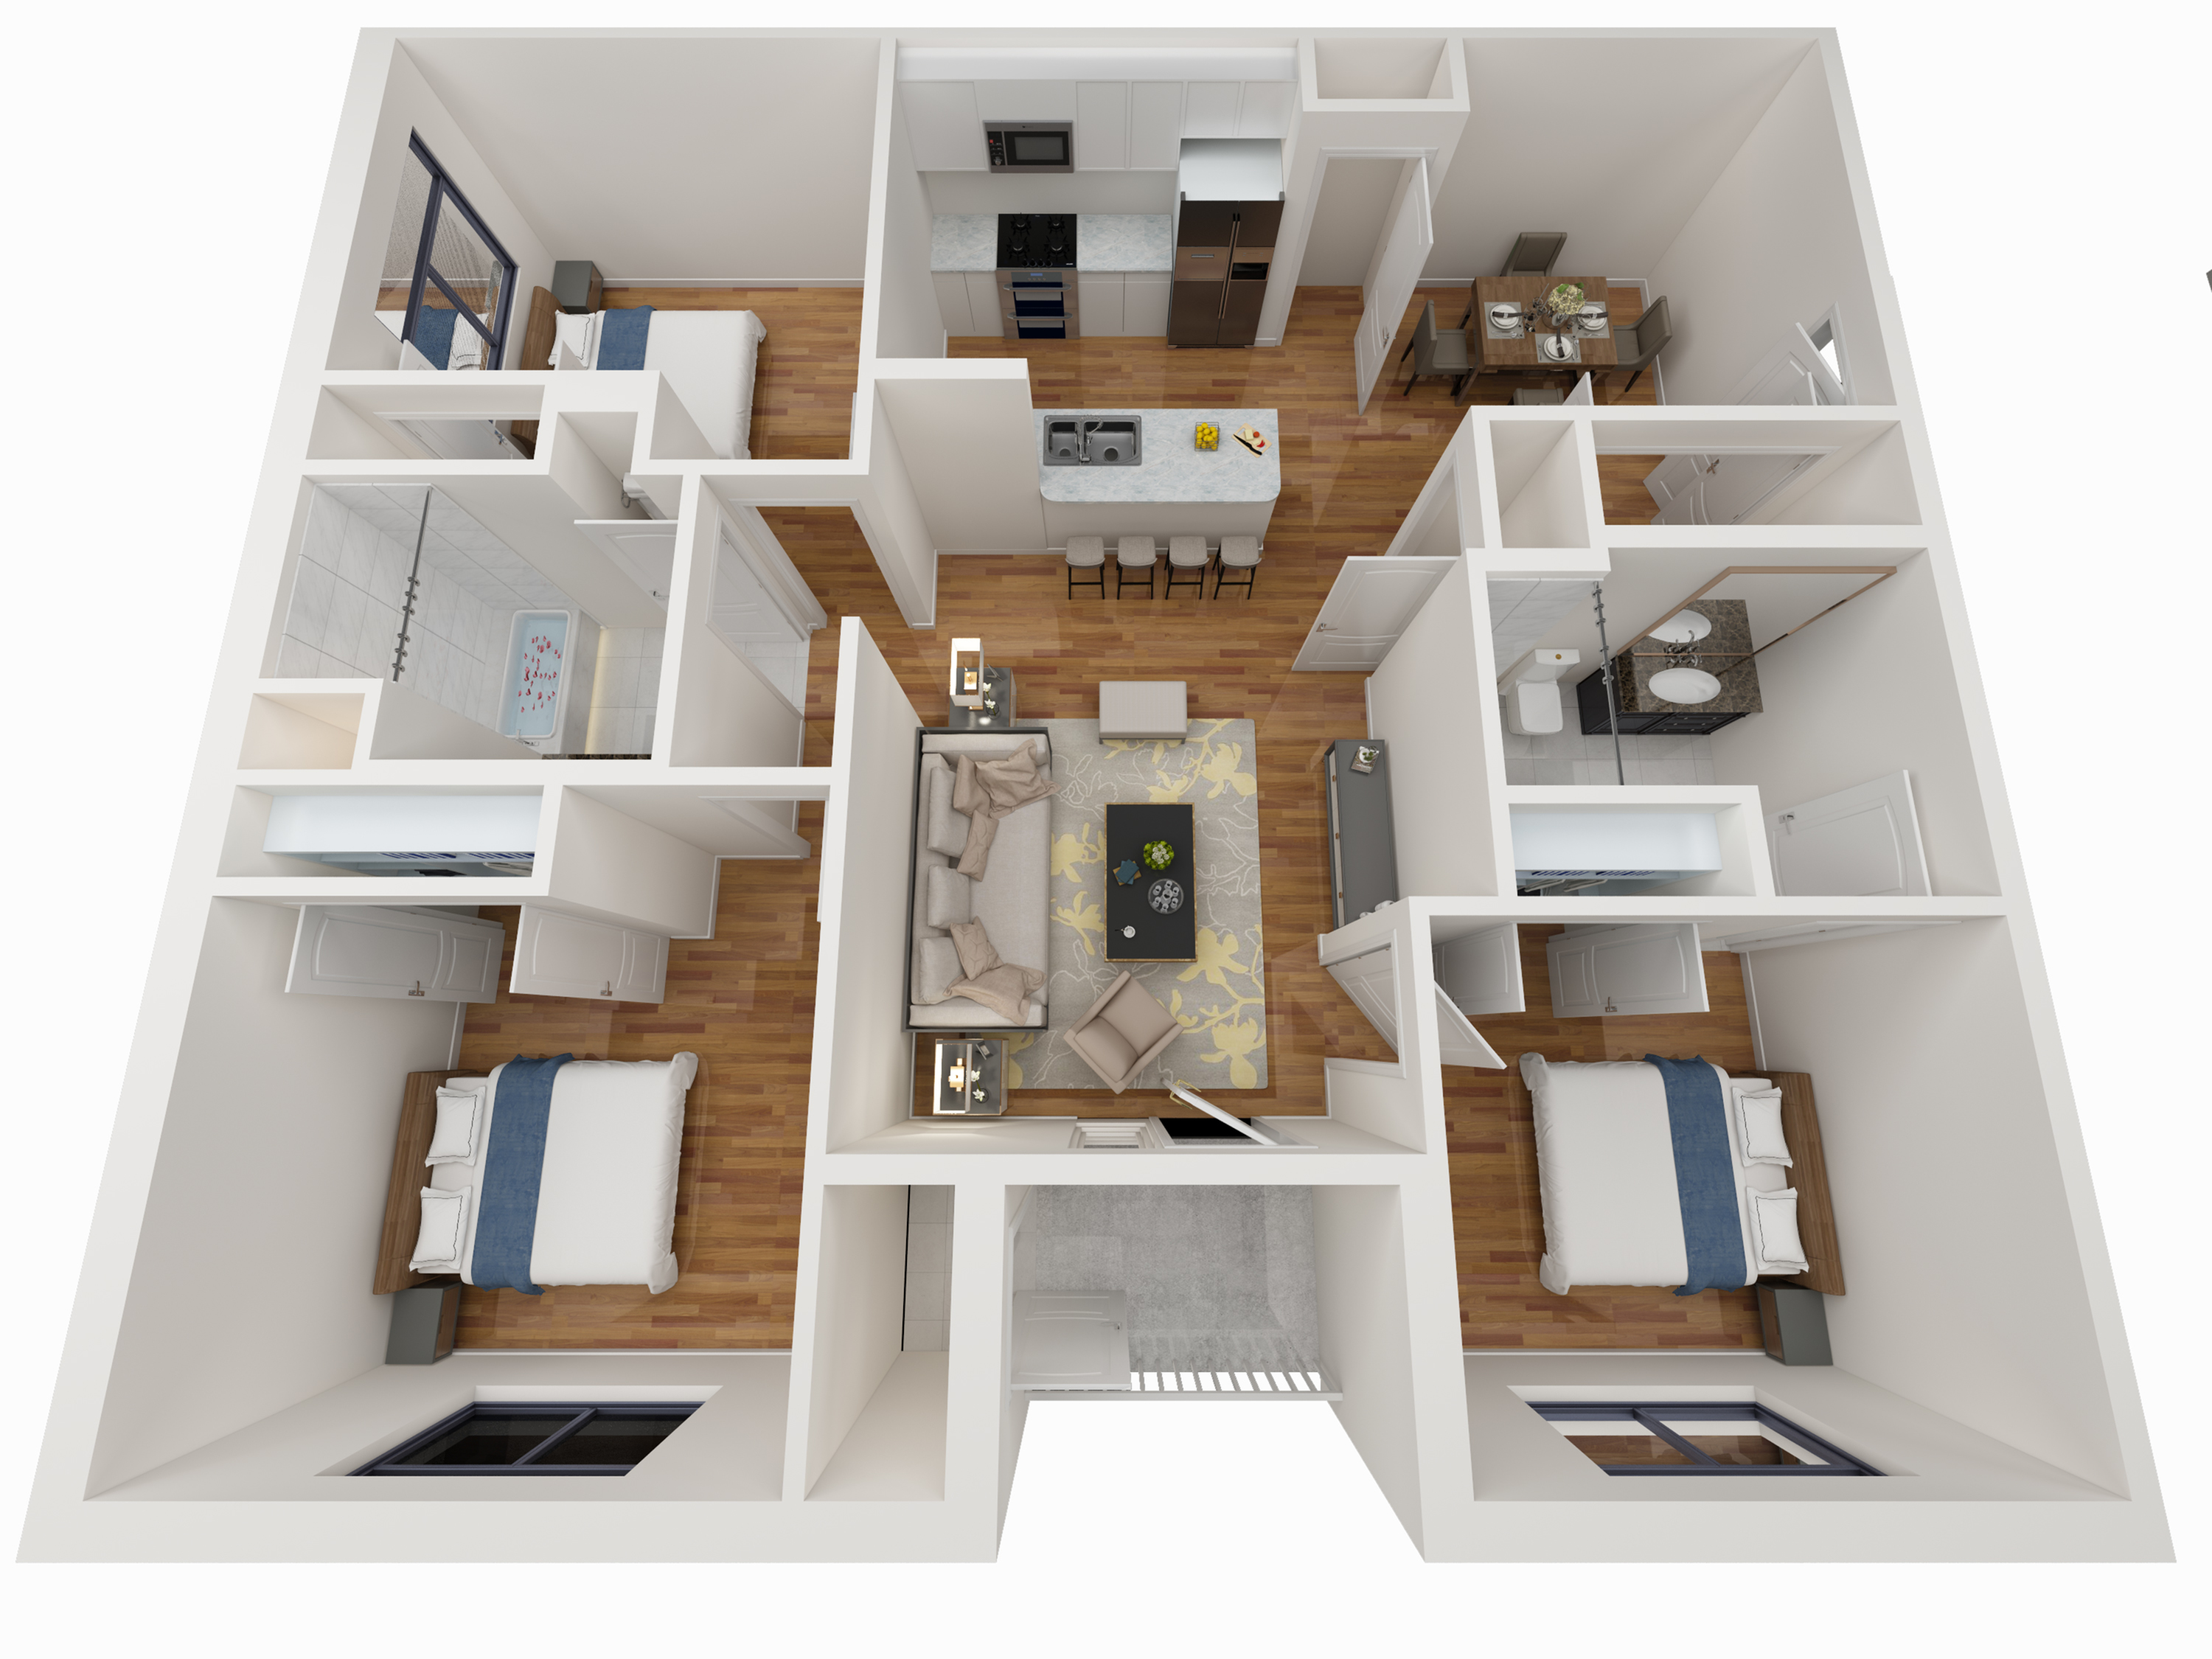 3 Bedroom Floor Plan - Avoca Apartments in Louisville, KY